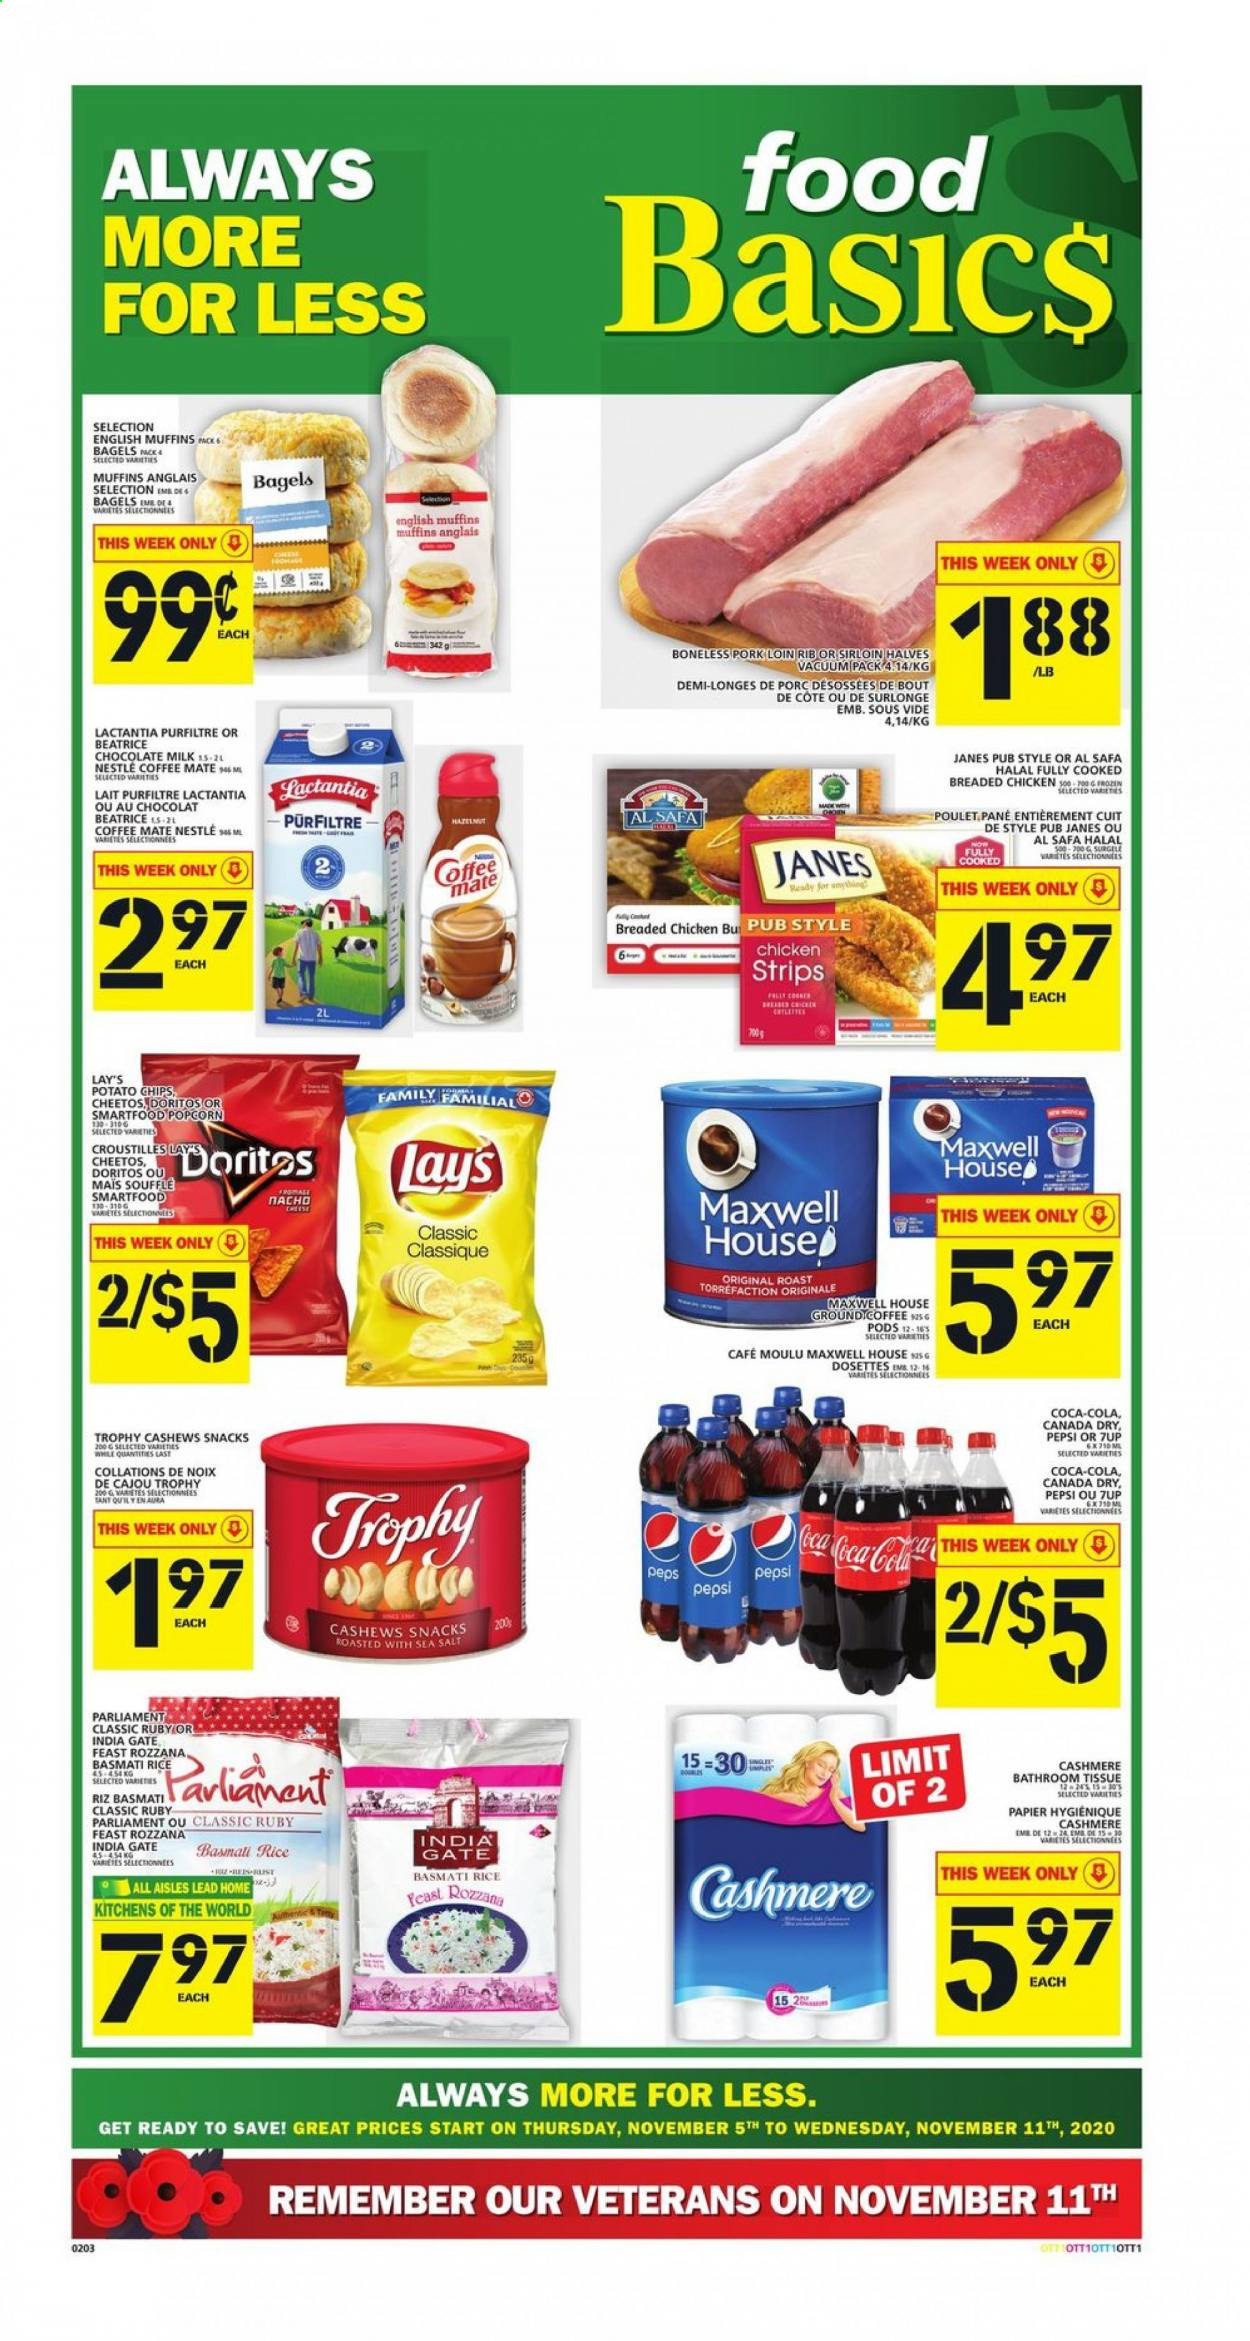 Food Basics Flyer - November 05, 2020 - November 11, 2020 - Sales products - always, bagels, basmati rice, canada dry, cashews, coca-cola, coffee, doritos, english muffins, mate, maxwell house, milk, muffins, nestlé, rice, vacuum, popcorn, pork loin, pork meat, potato chips, cheetos, chicken, pepsi, chocolate milk, chips, chocolate, cheese, snack, salt, lay's, poulet, chocolat, lait, café, porc, café moulu, noix, papier, maïs, riz, snacks, sea salt, roast. Page 1.